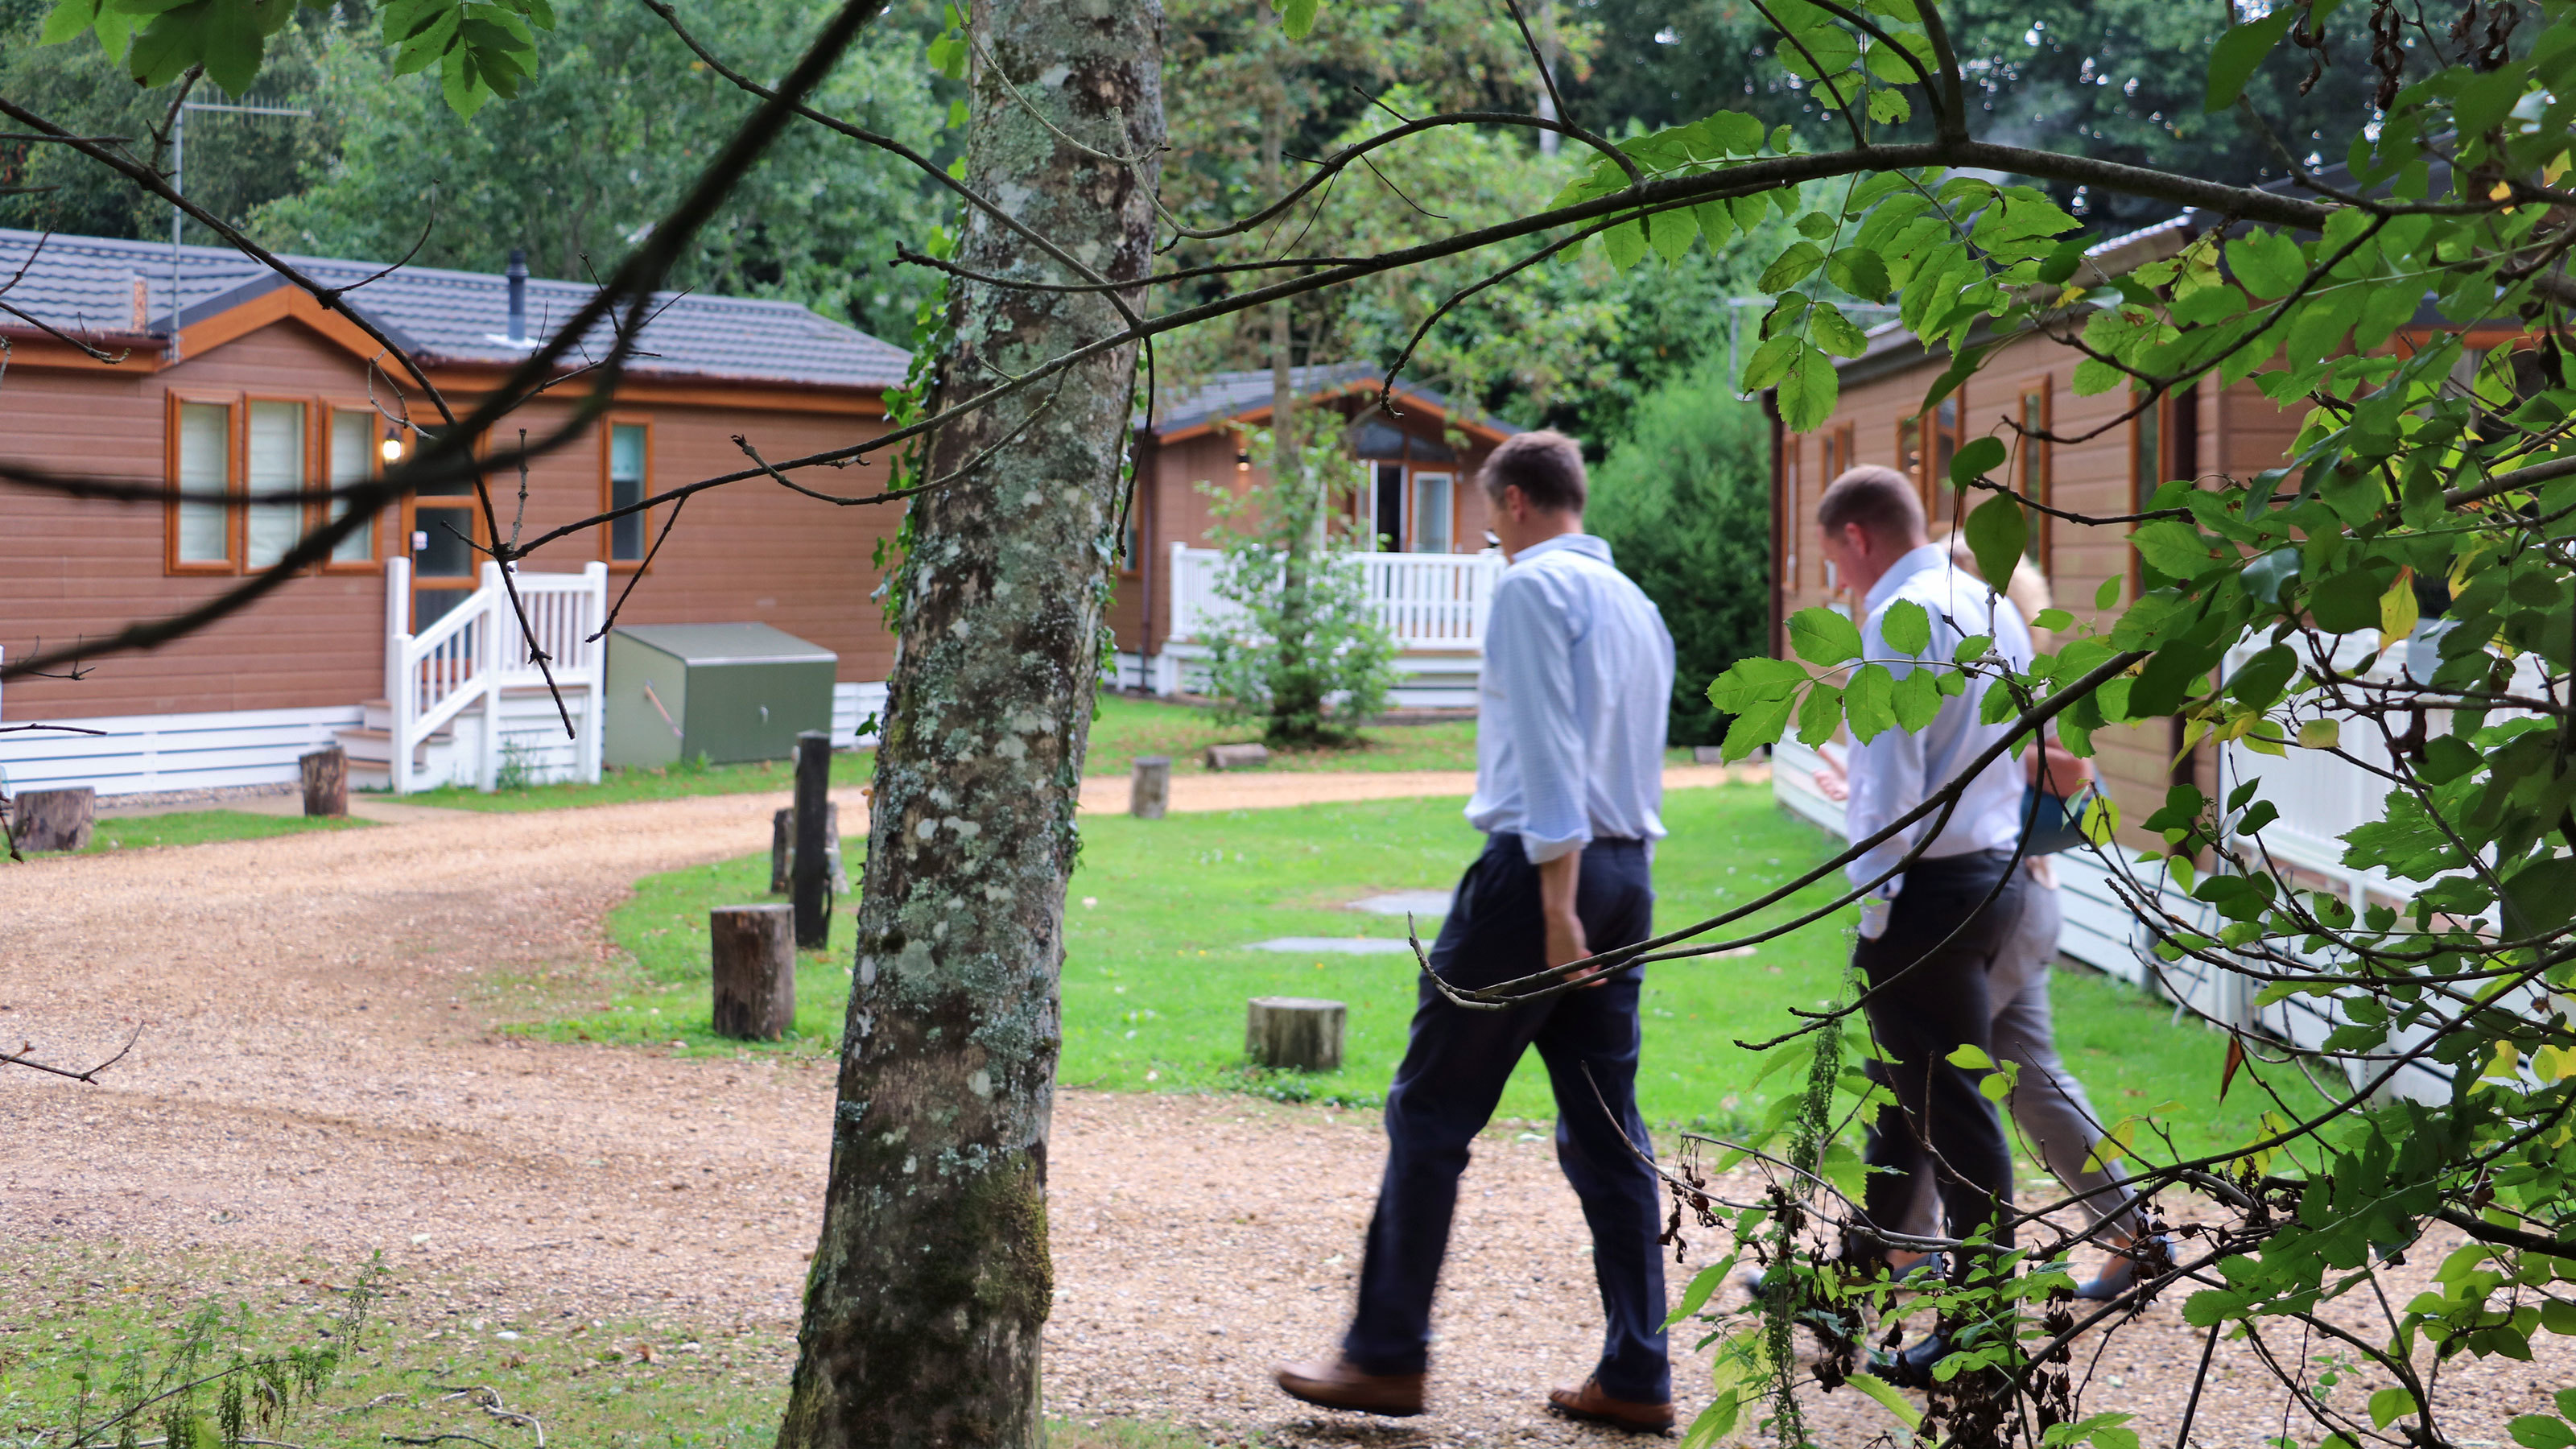 The-group-take-a-stroll-through-the-woodlands-of-Merley-Court-Holiday-Park